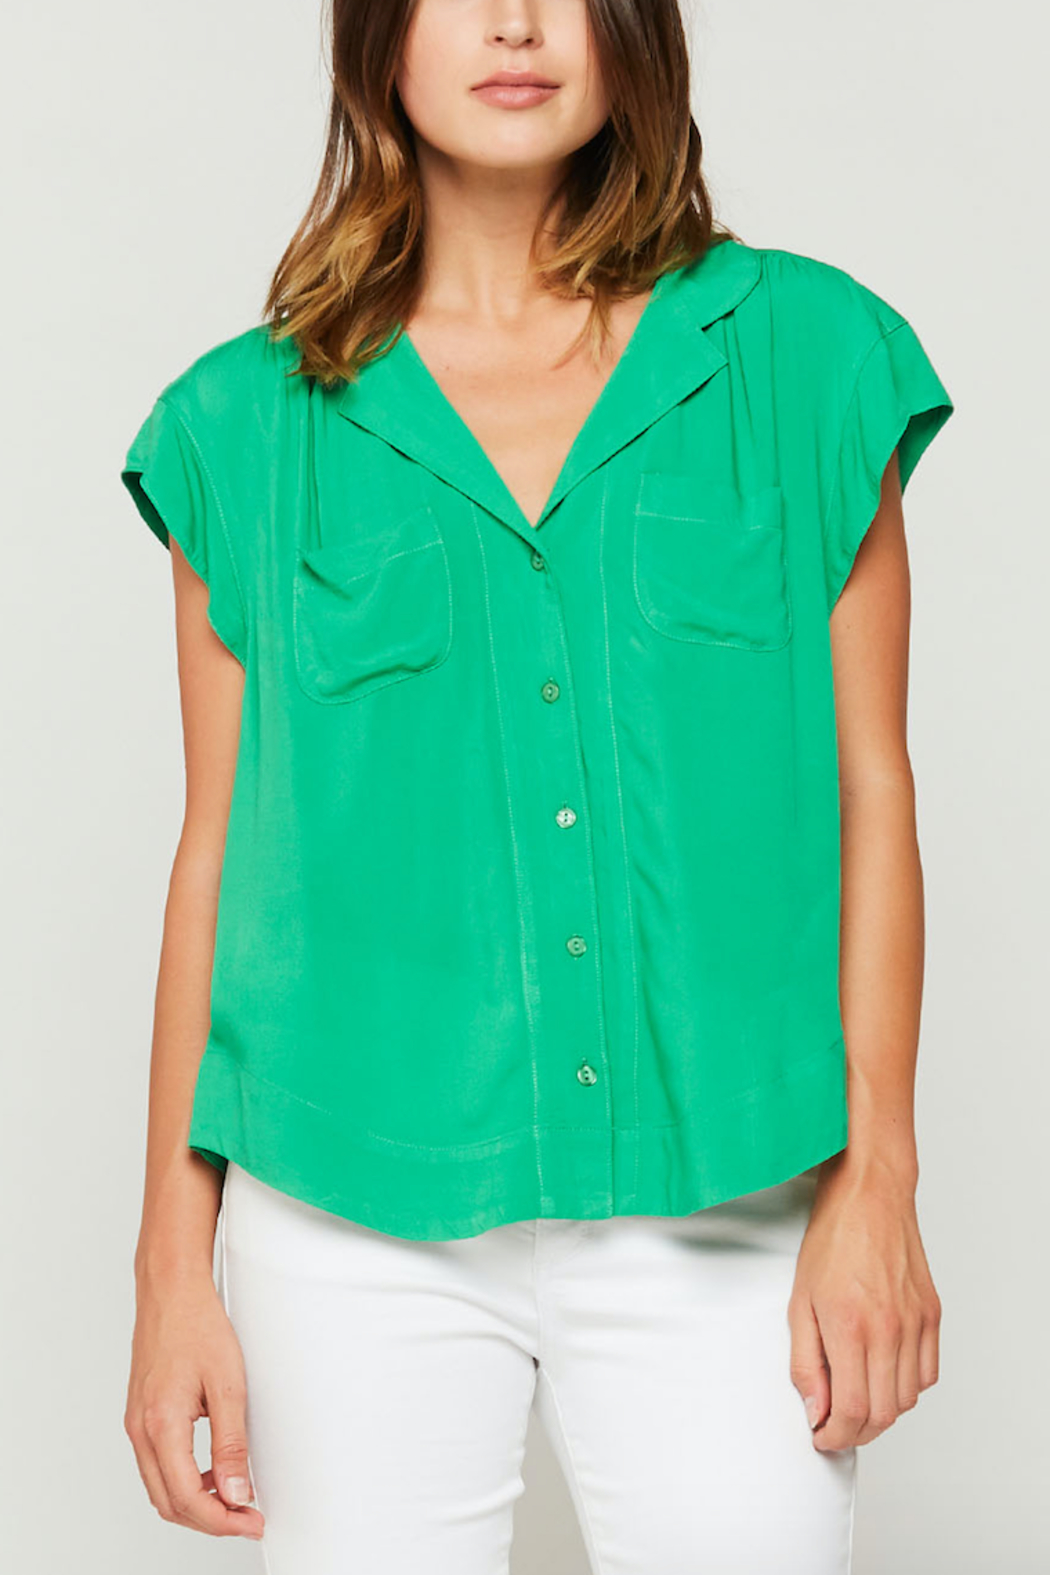 Velvet Heart Jenna Button Down Blouse from Texas by y&i